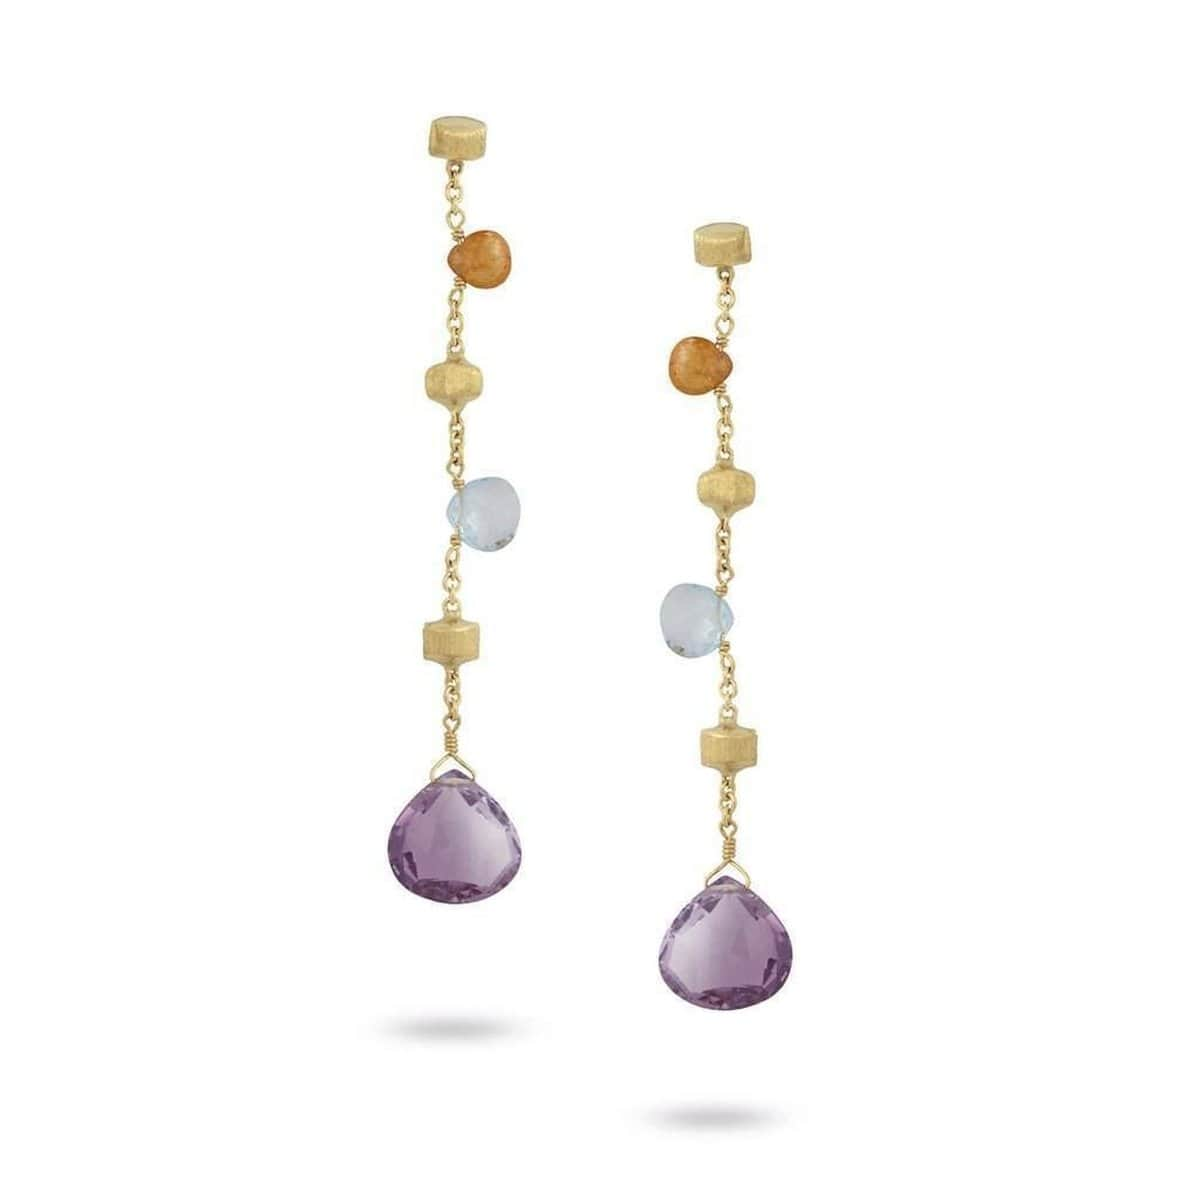 Paradise Mixed Gemstone Drop Earrings - OB1431 MIX01 Y-Marco Bicego-Renee Taylor Gallery